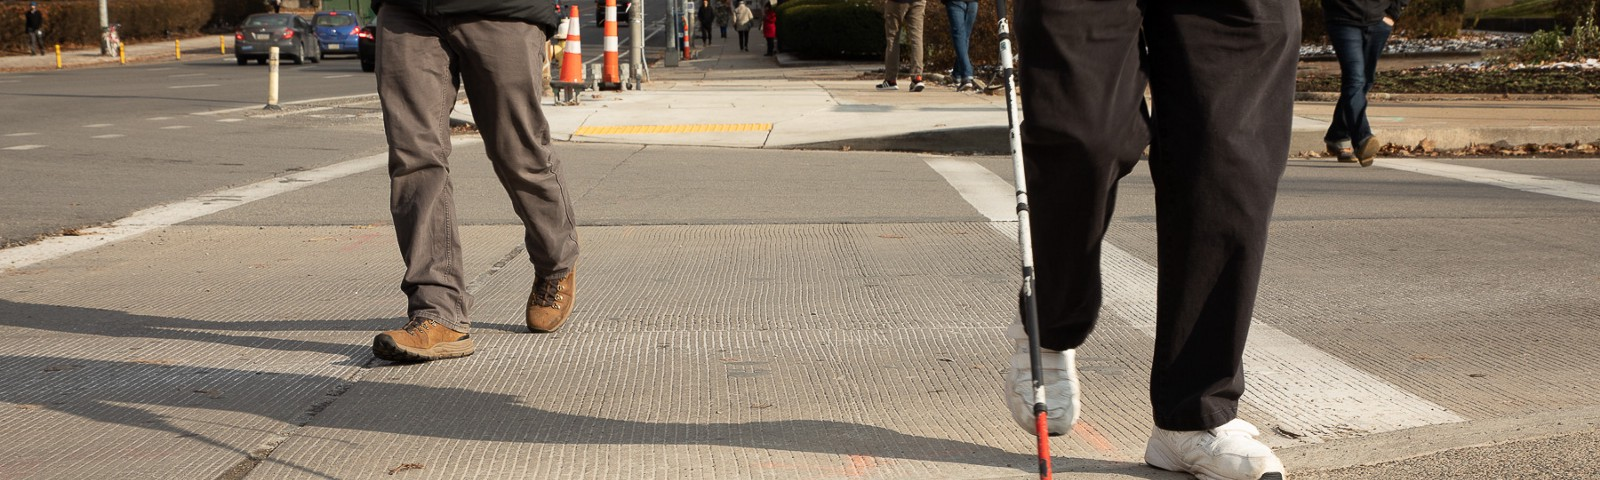 Two people crossing an intersection with the image taken from a low angle showing the curb ramp. One person uses an assistive can typically used by people with visual impairments.